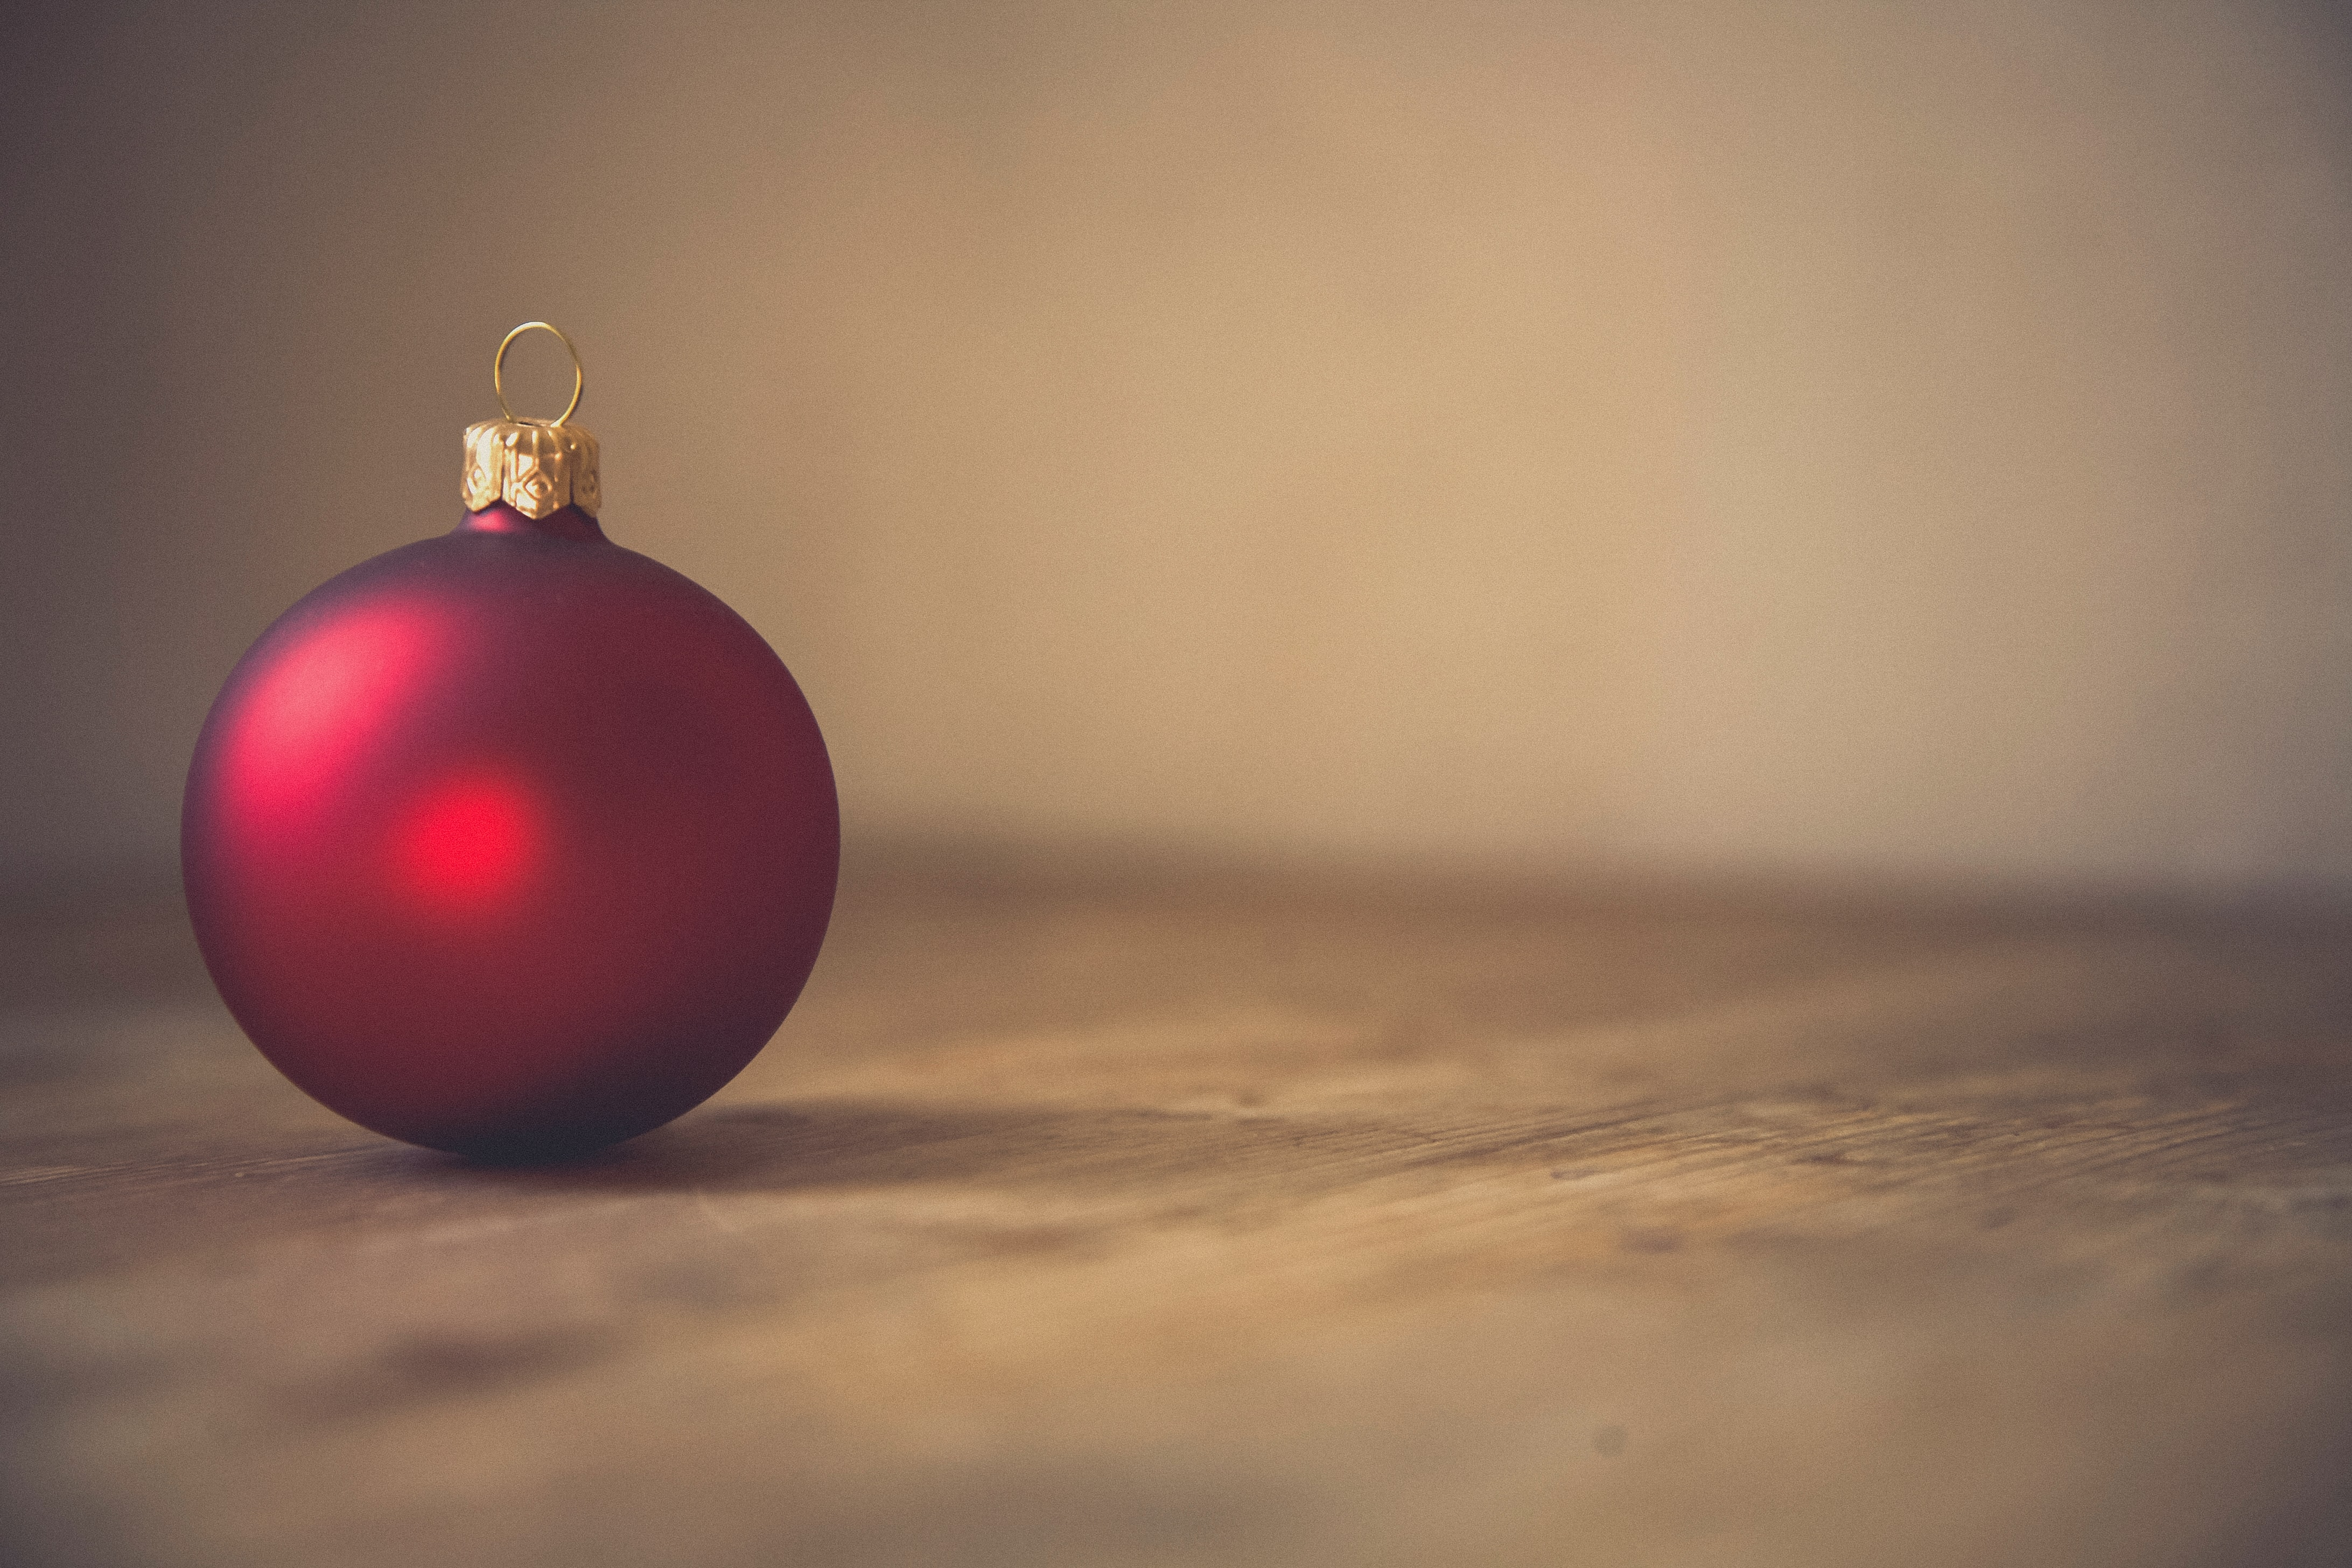 closeup photo of red ball ornament on surface